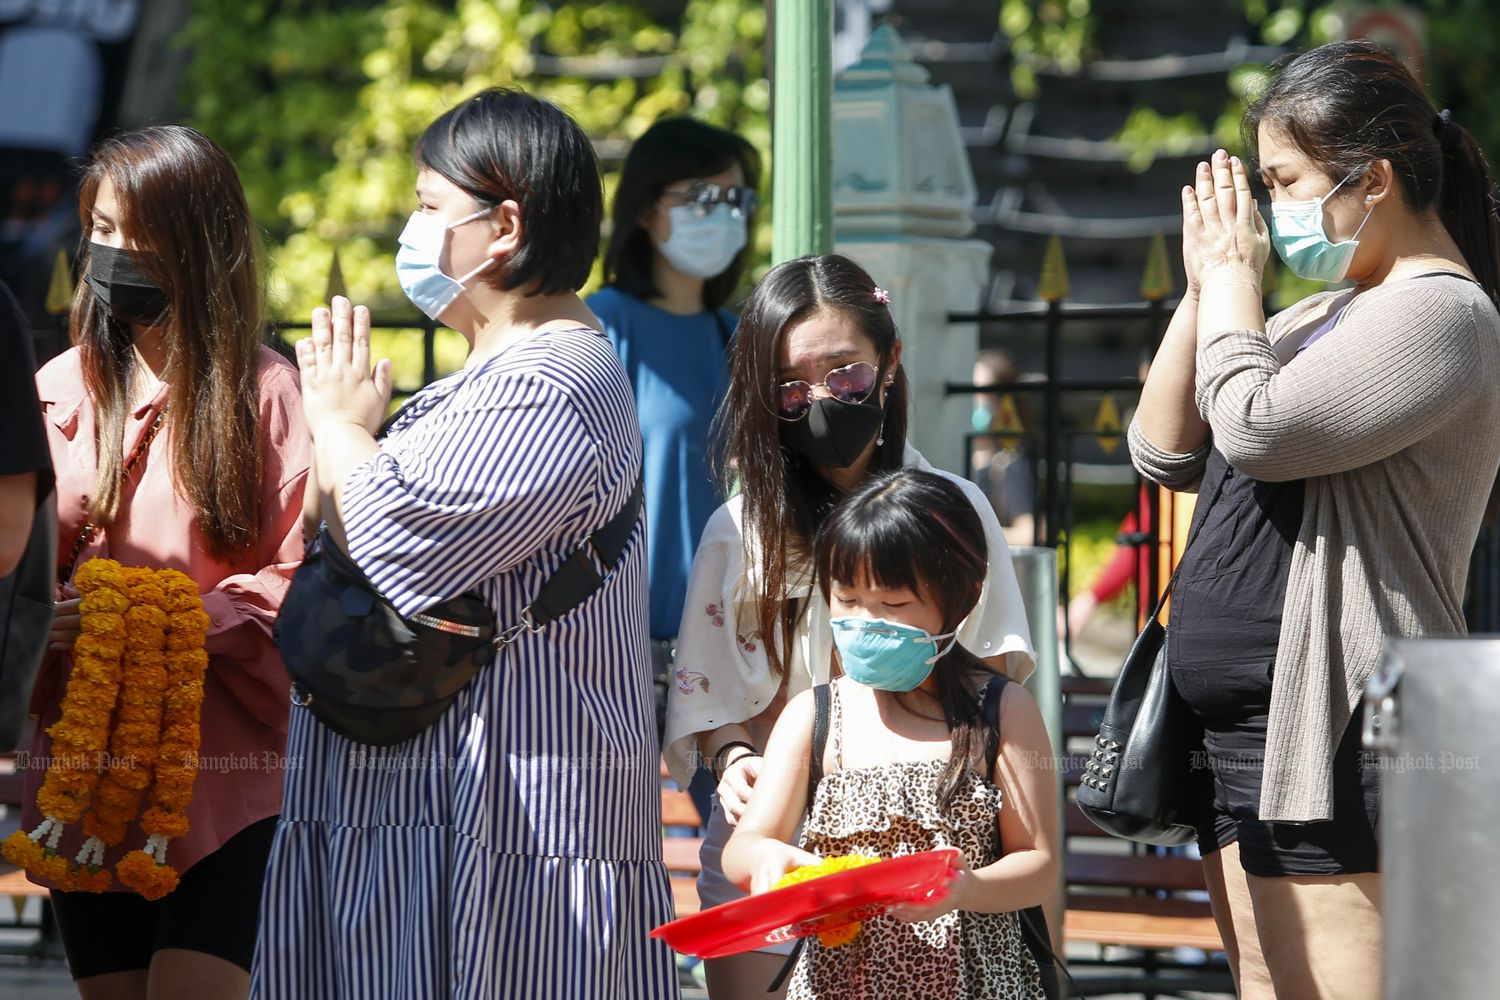 Chinese tourists pray at the Erawan Shrine in Bangkok on Tuesday. (Photo by Pattarapong Chatpattarasill)